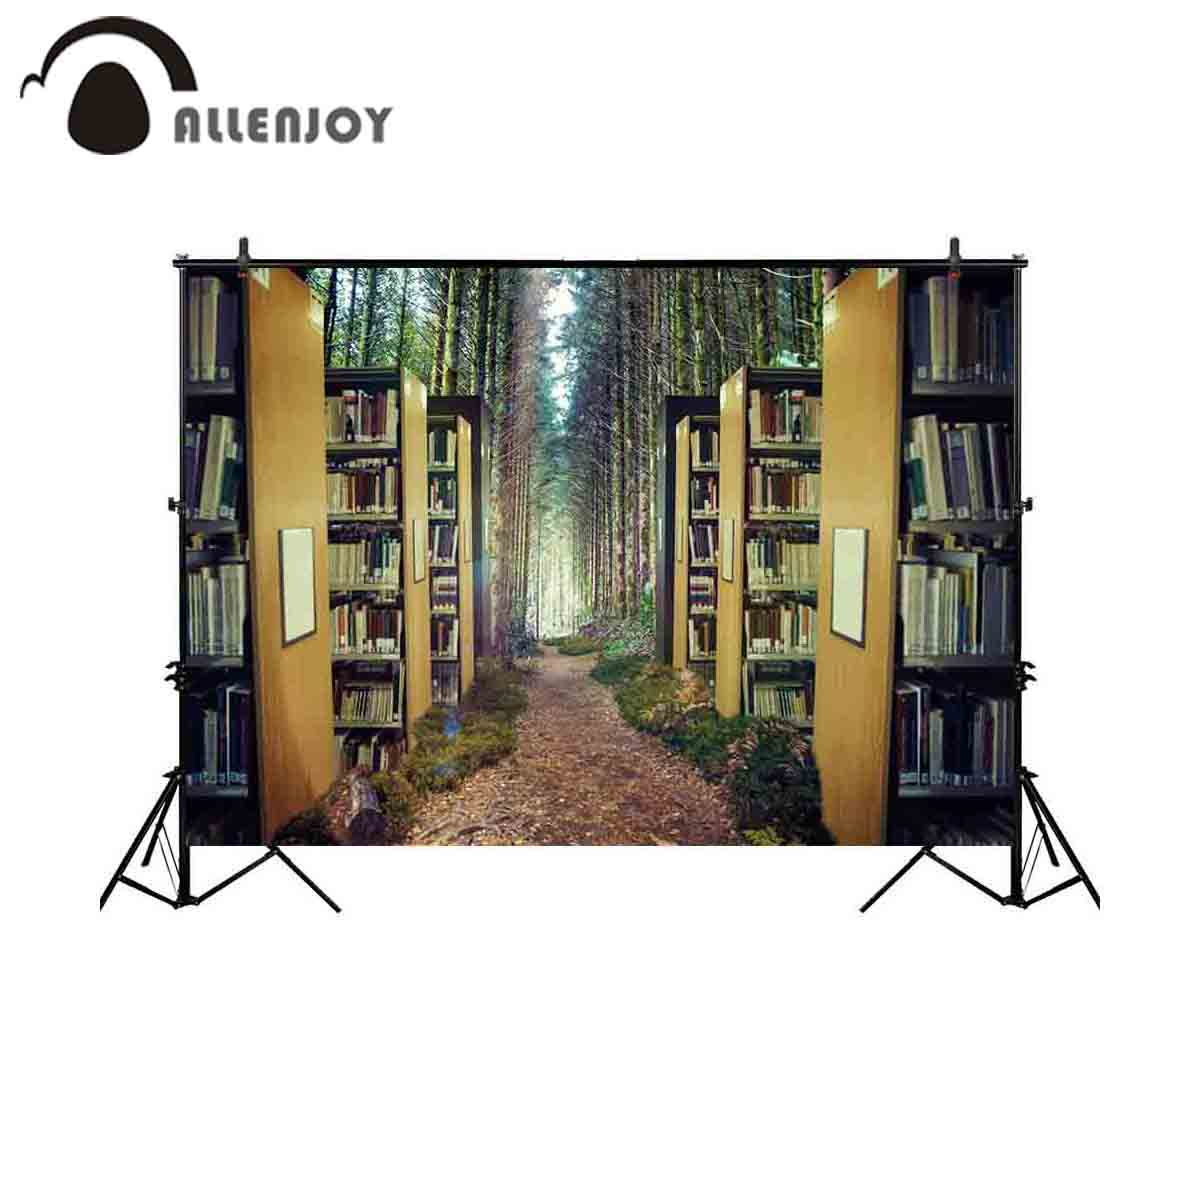 Allenjoy Photography Background Fantasy Bookshelf Forest Fairy Tale Backdrop Photobooth Photo Studio Photocall Prop Fabric